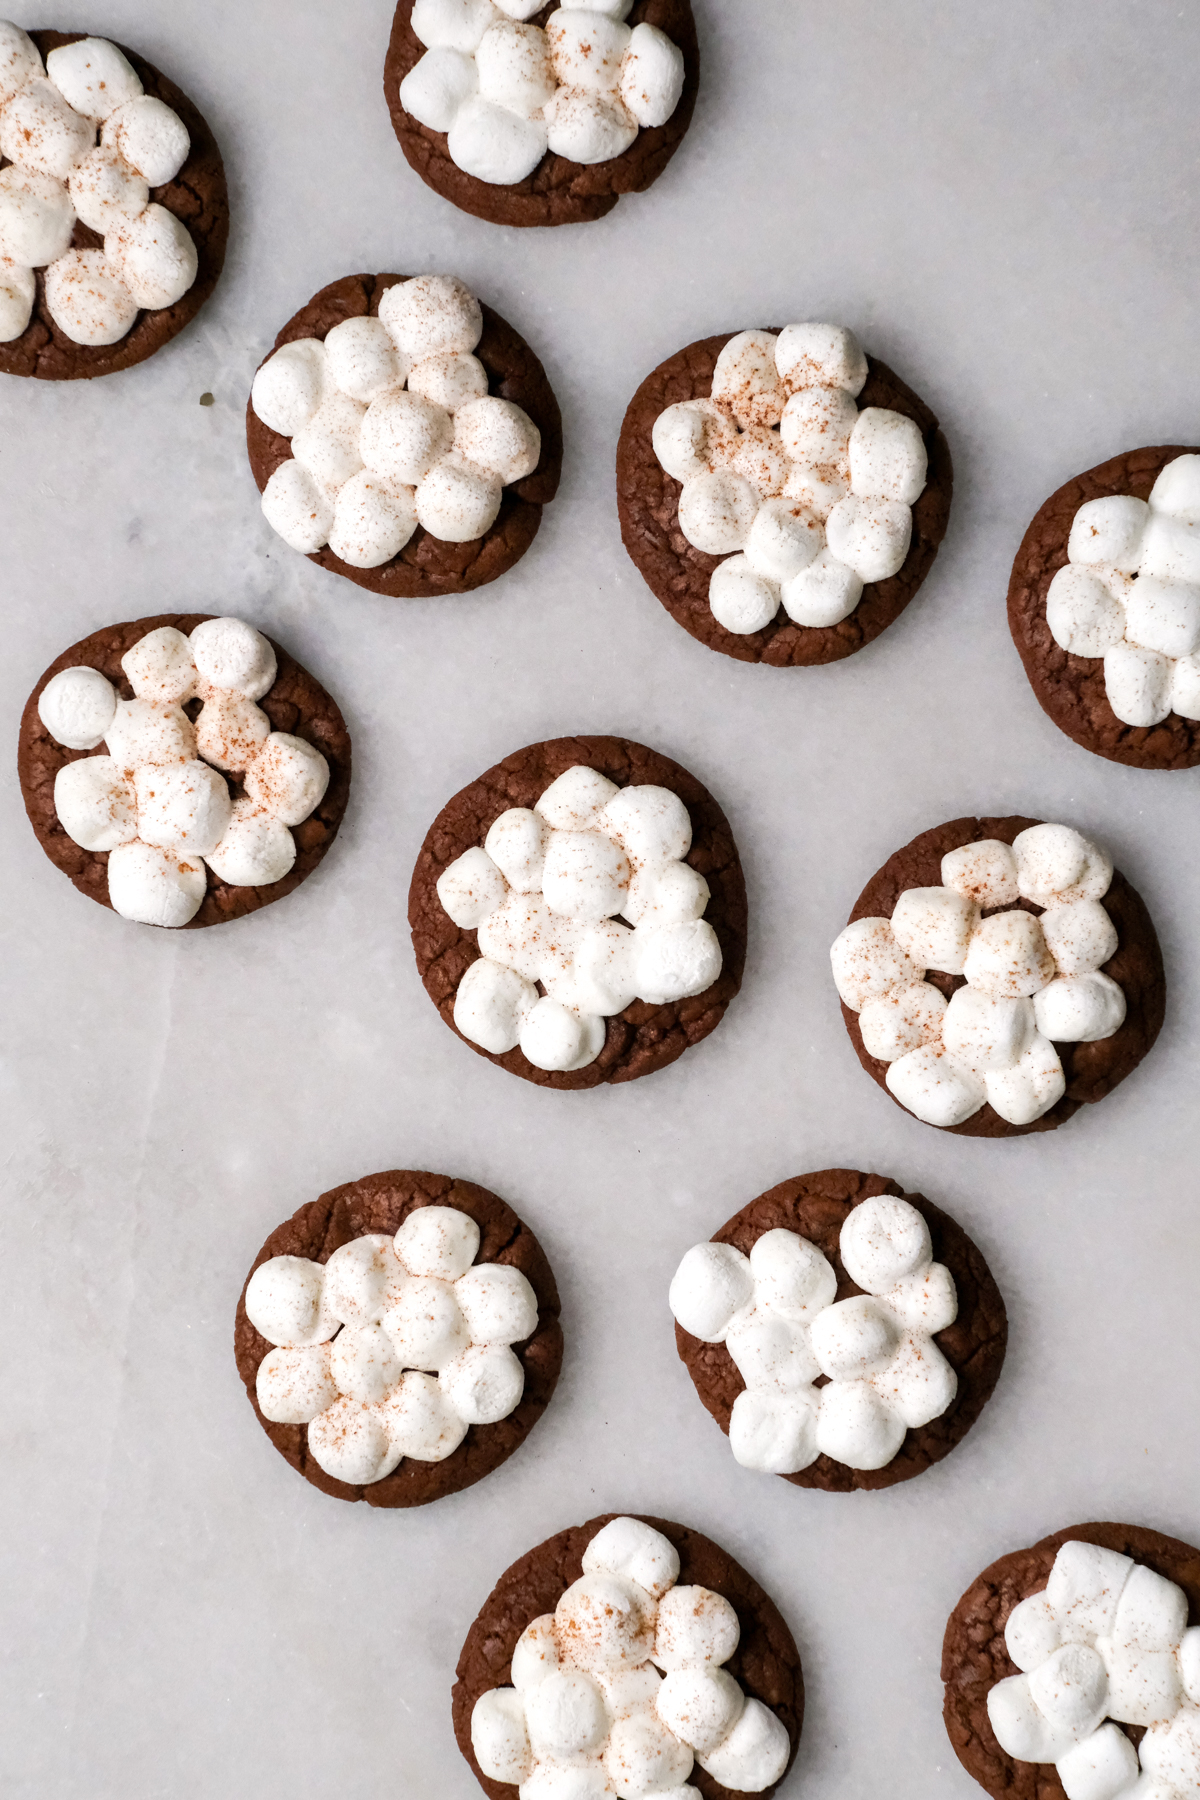 hot chocolate cookies on a marble counter